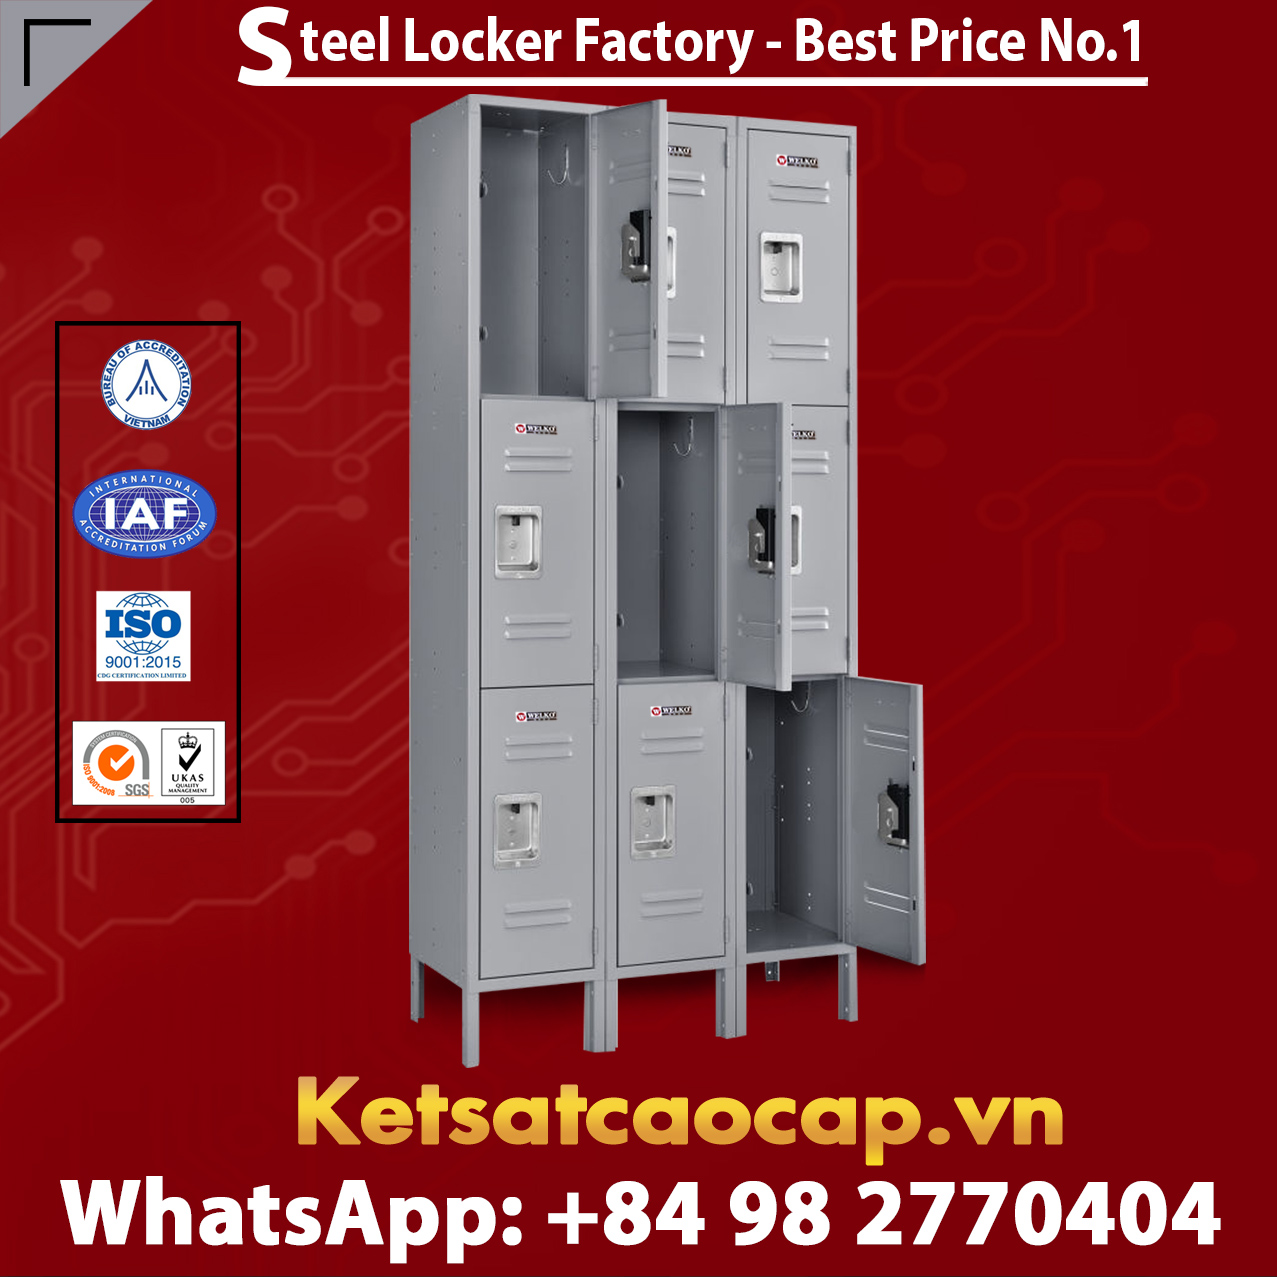 Steel Locker 3 Tier 12 x 15 x 24 9 Door Ready To Assemble Gray